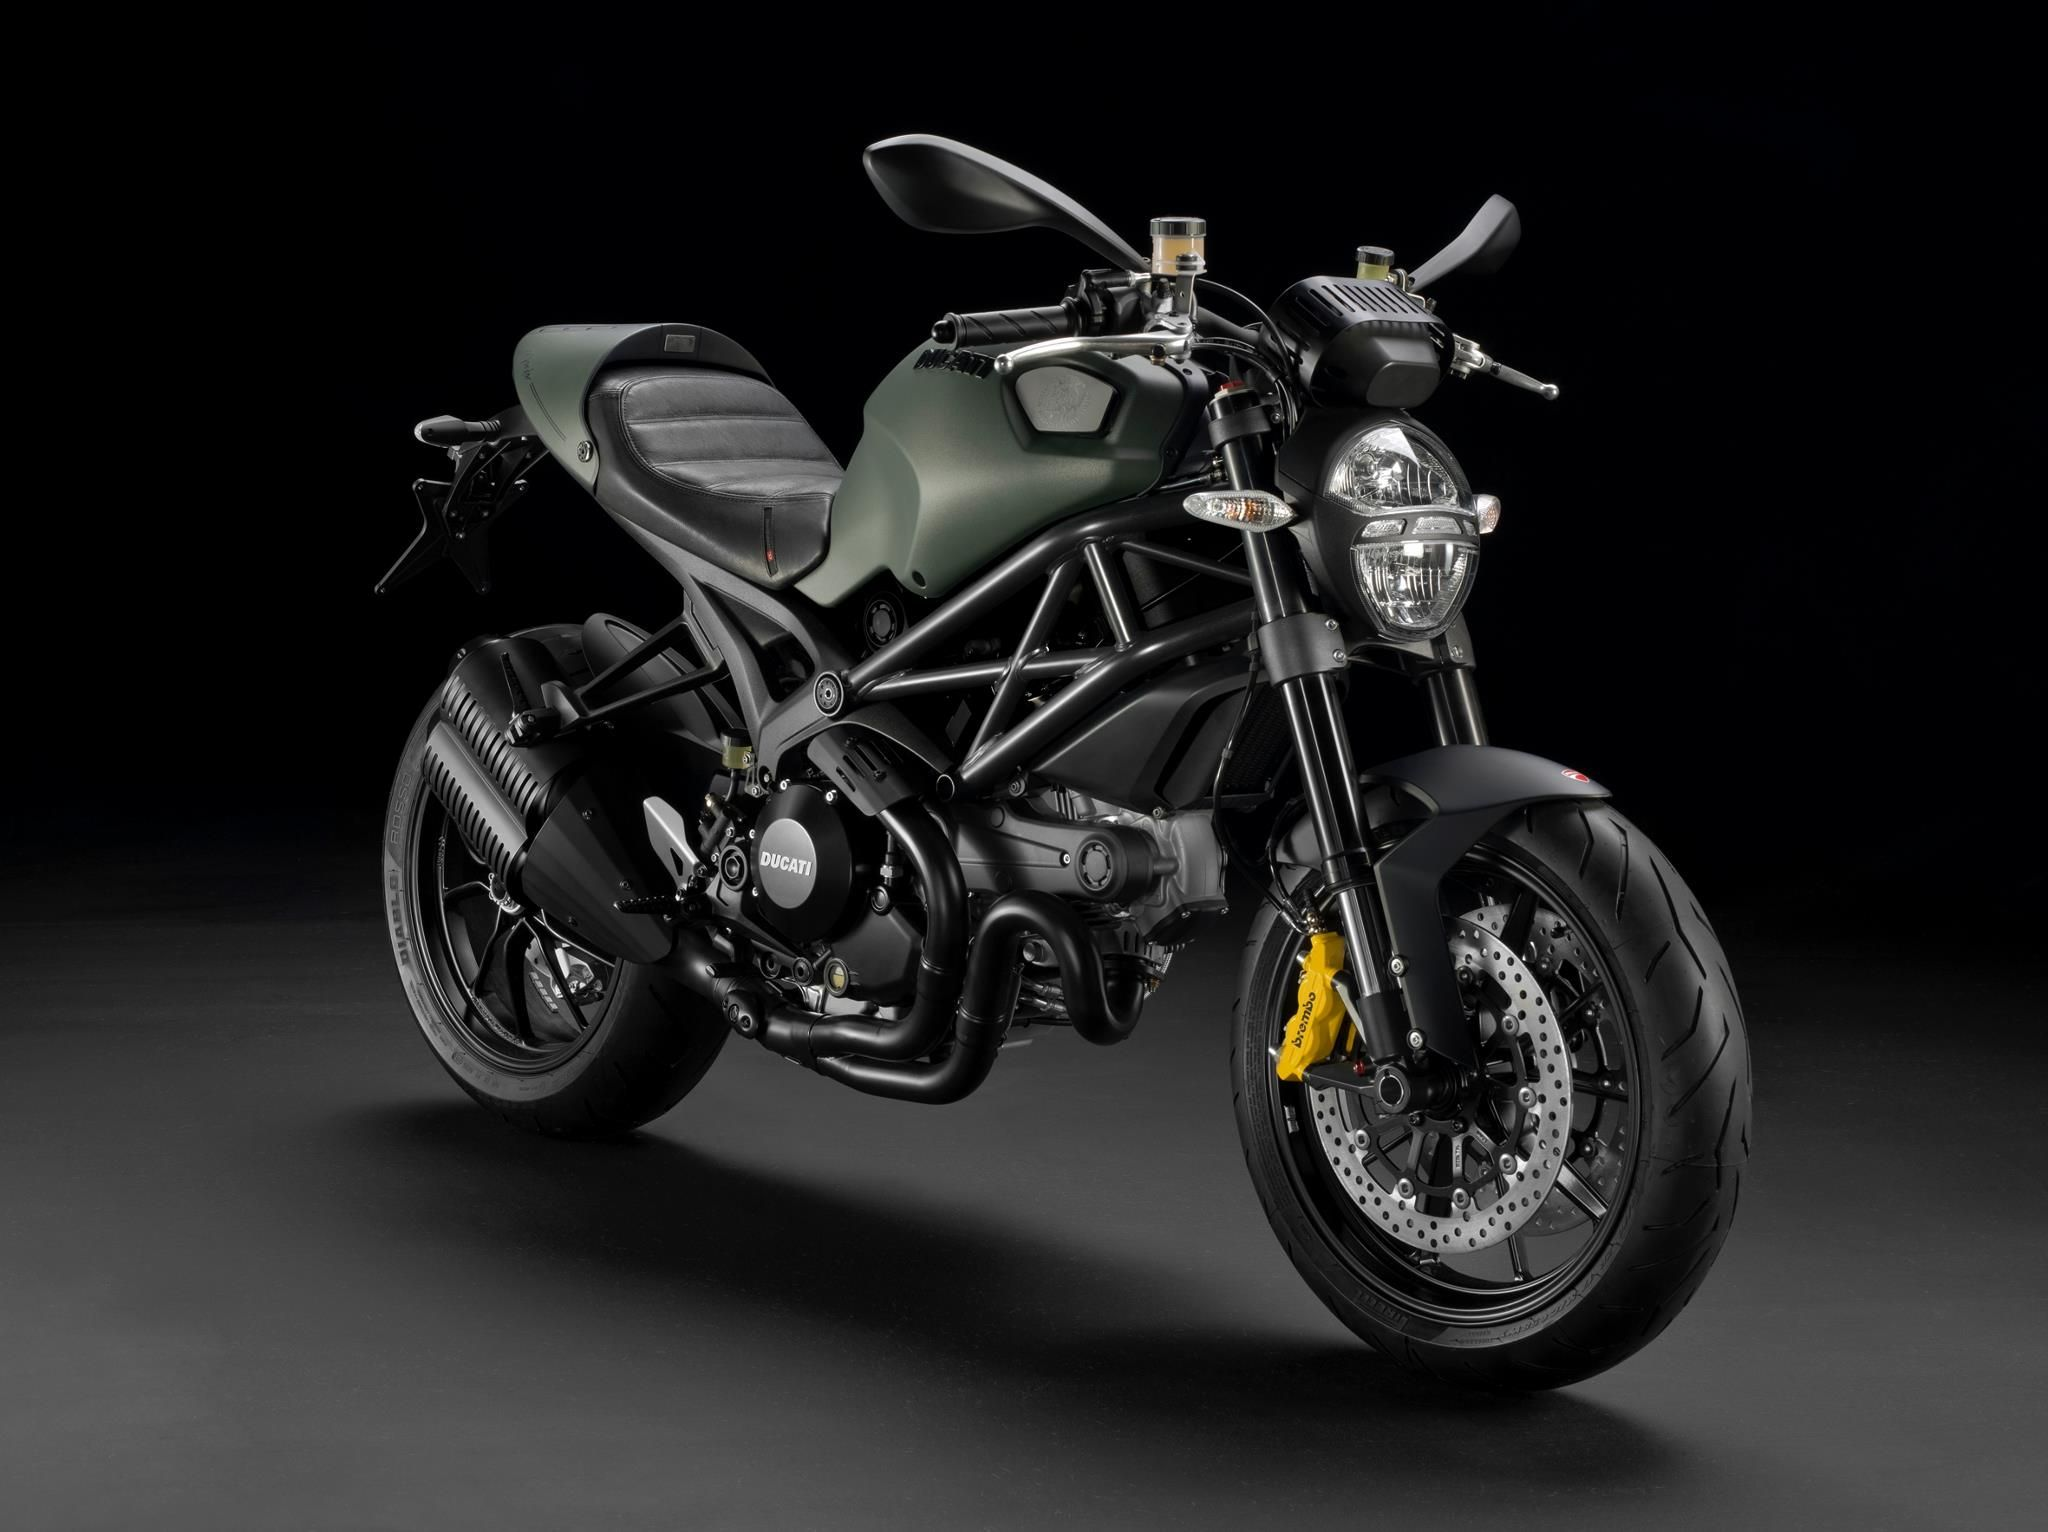 Ducati Monster 1100 Diesel (Special Edition) Only 5 in Colombia. Dreamed moto